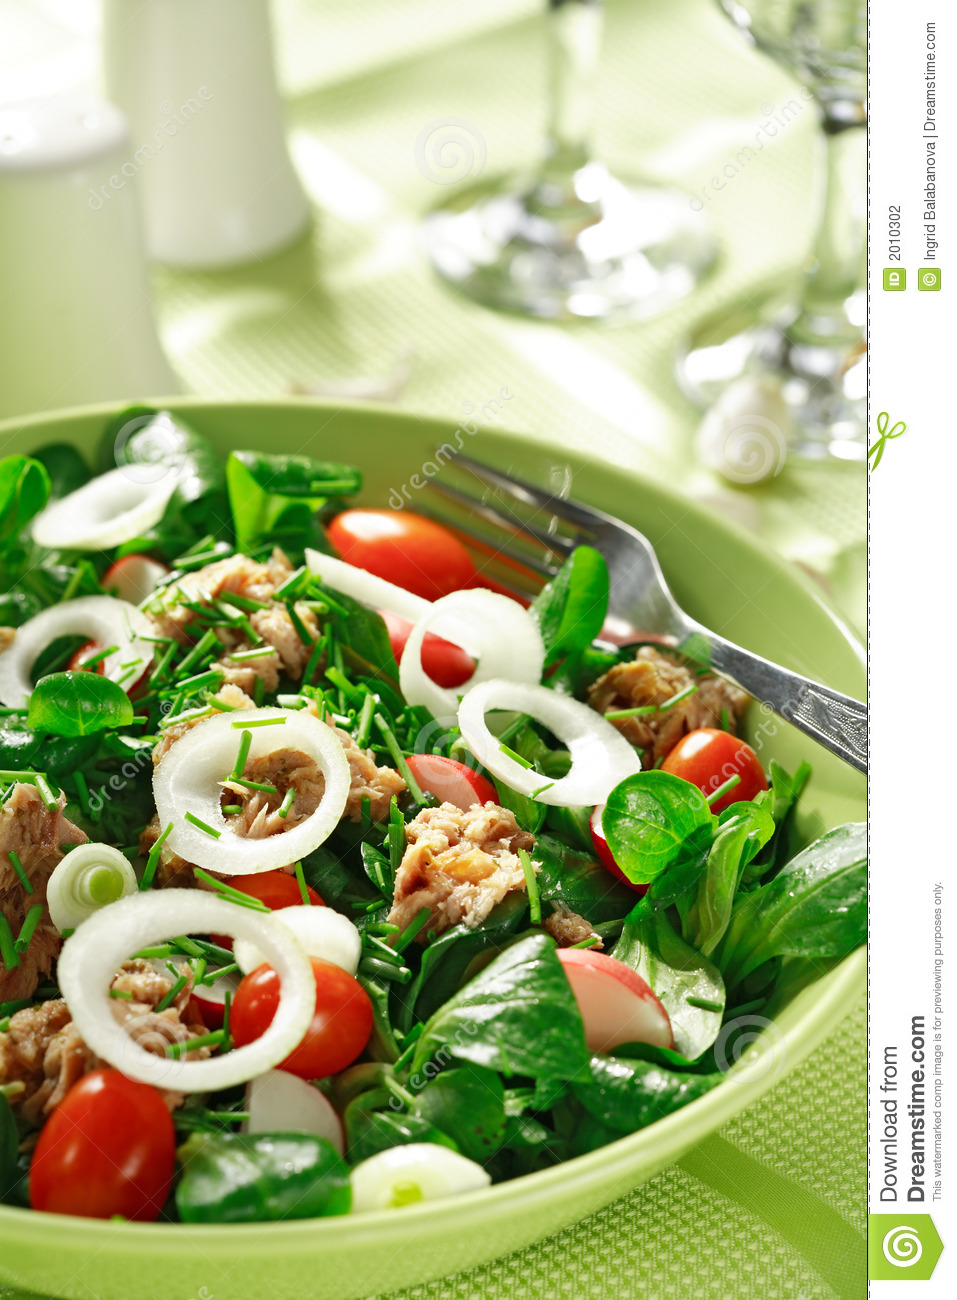 Healthy Food Stock Photography - Image: 2010302: dreamstime.com/stock-photography-healthy-food-image2010302